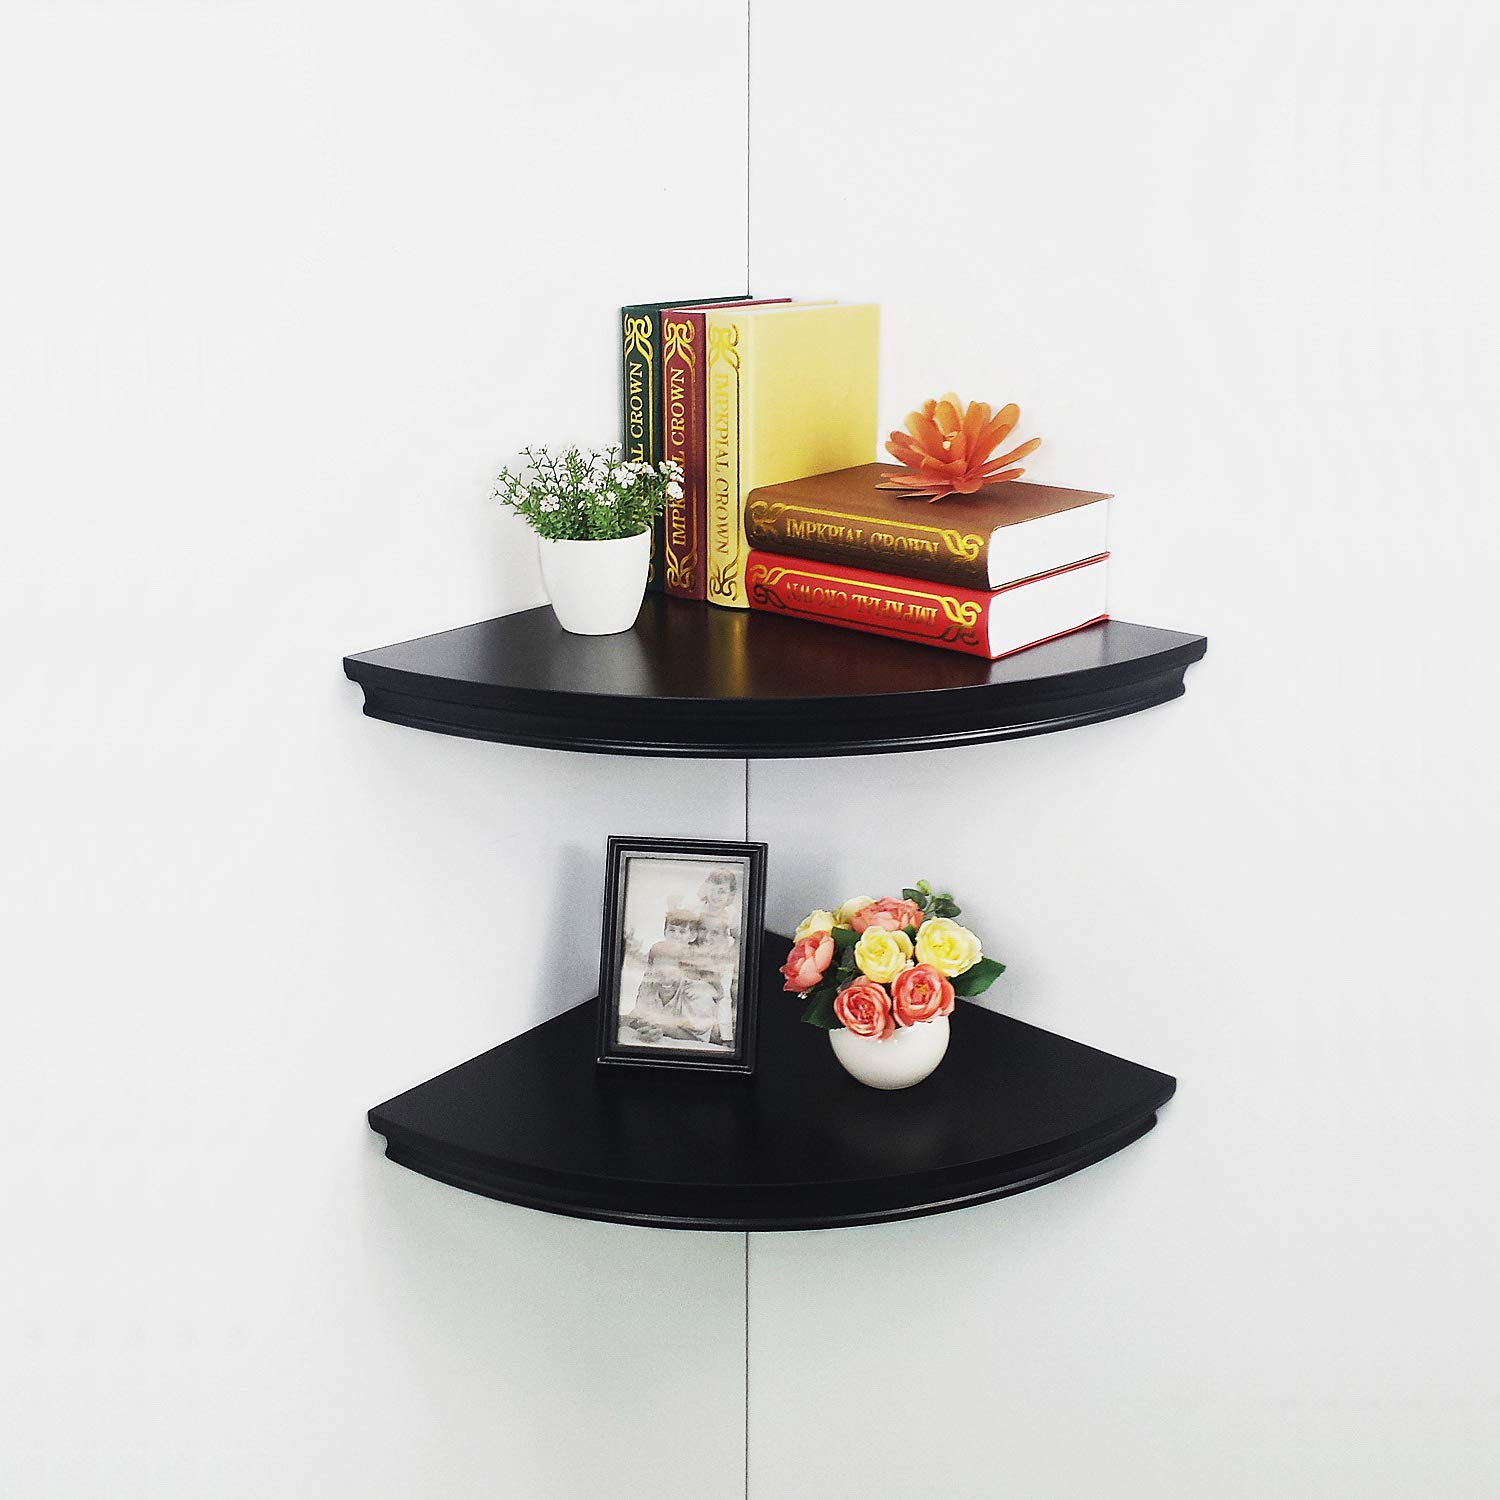 hao set large classic radial corner wall shelves black wood floating mdf shelving approx home kitchen pottery barn mount bookshelf sturdy white mantel mitre ballarat small desk